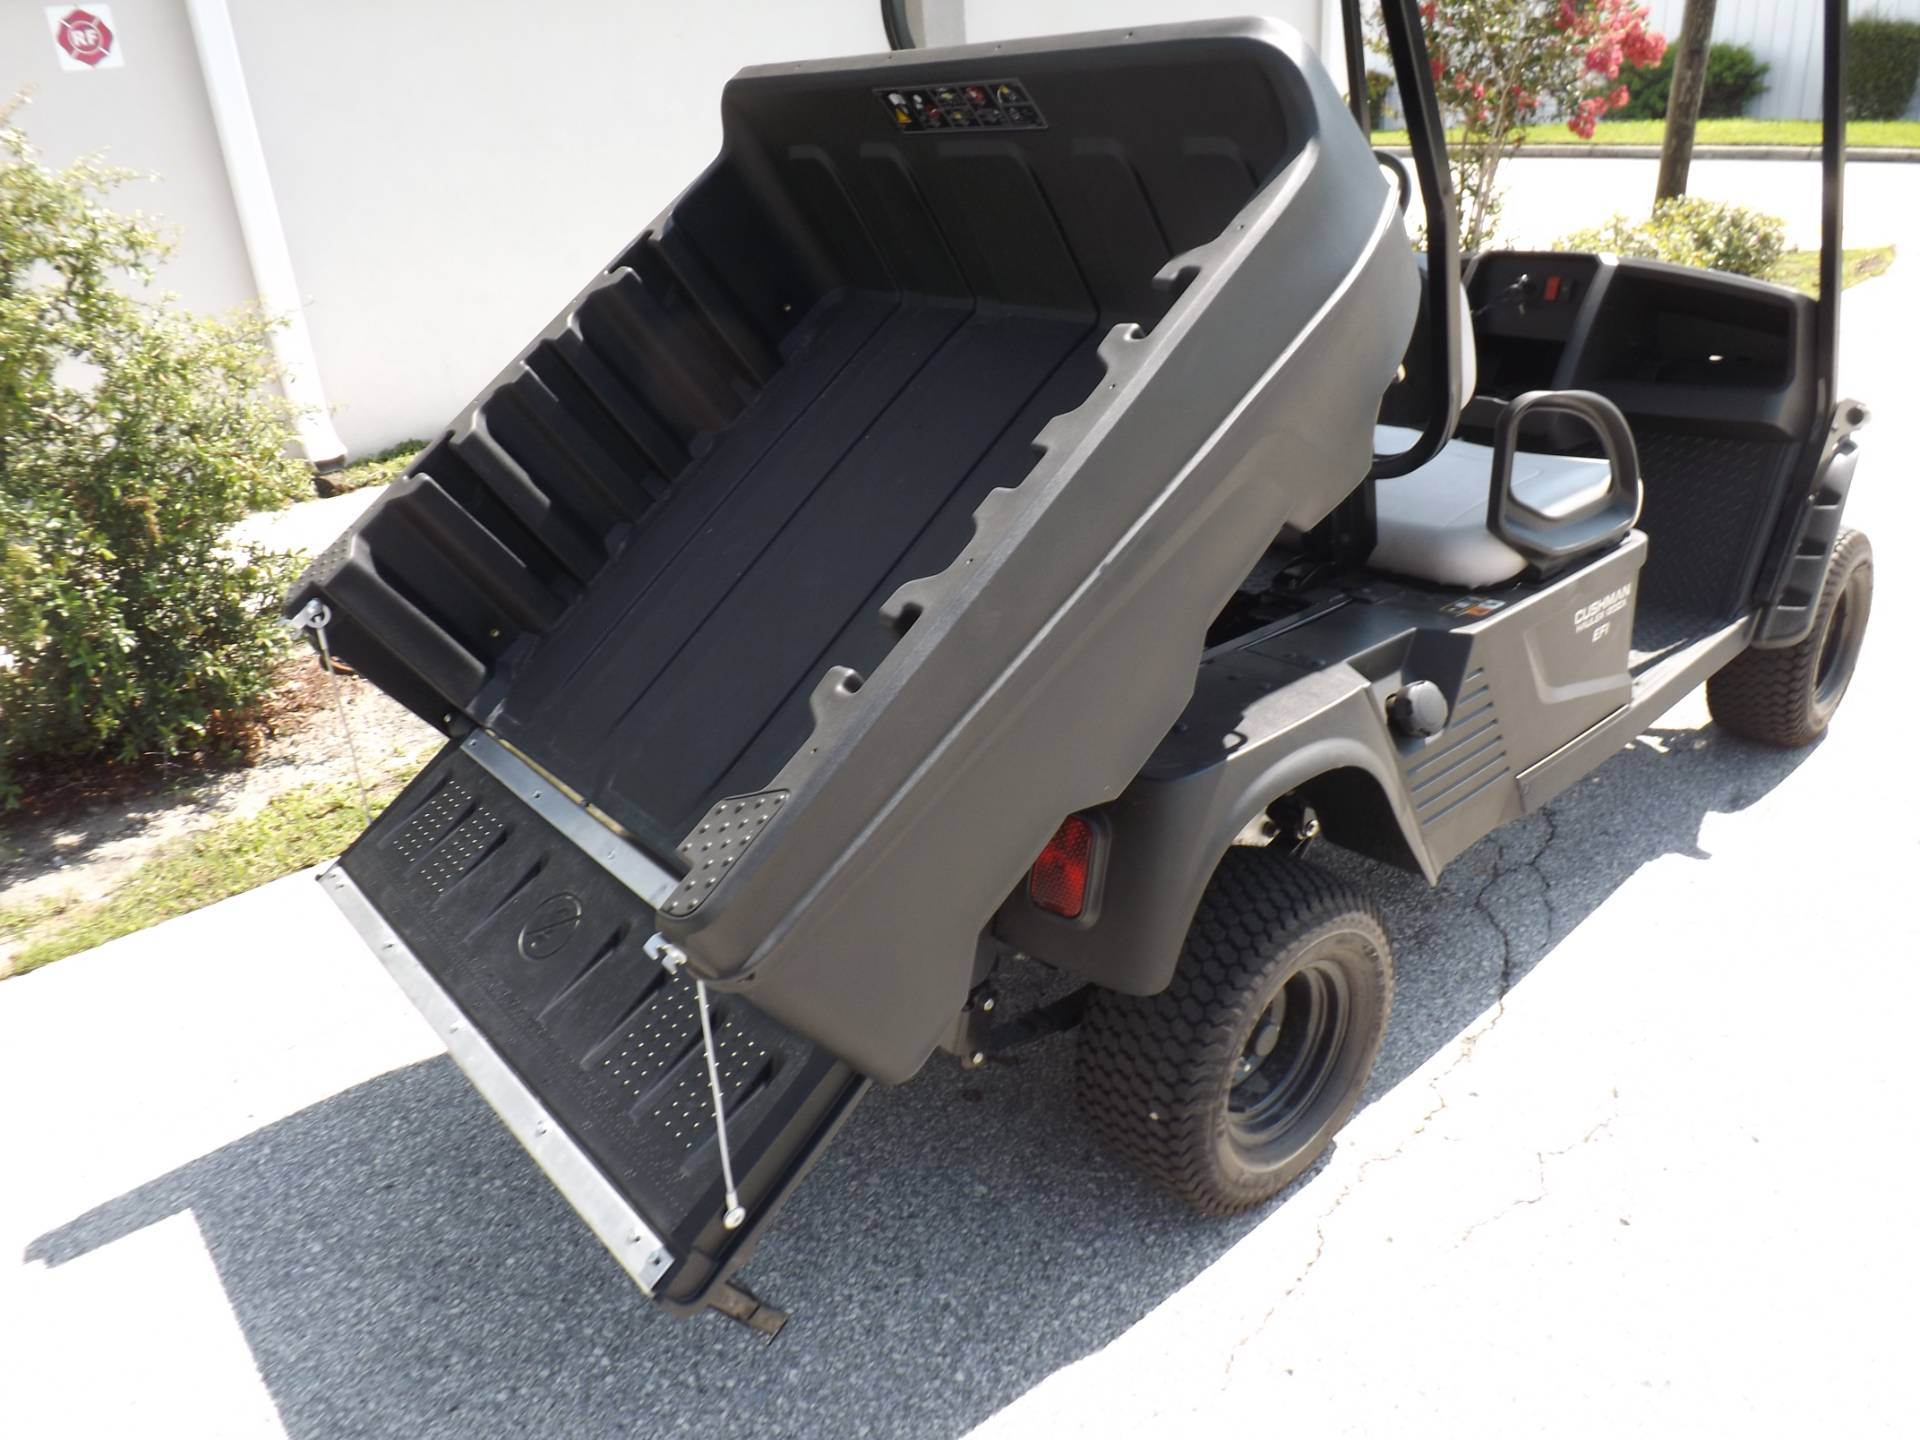 2020 Cushman Hauler 1200X Gas in Lakeland, Florida - Photo 14